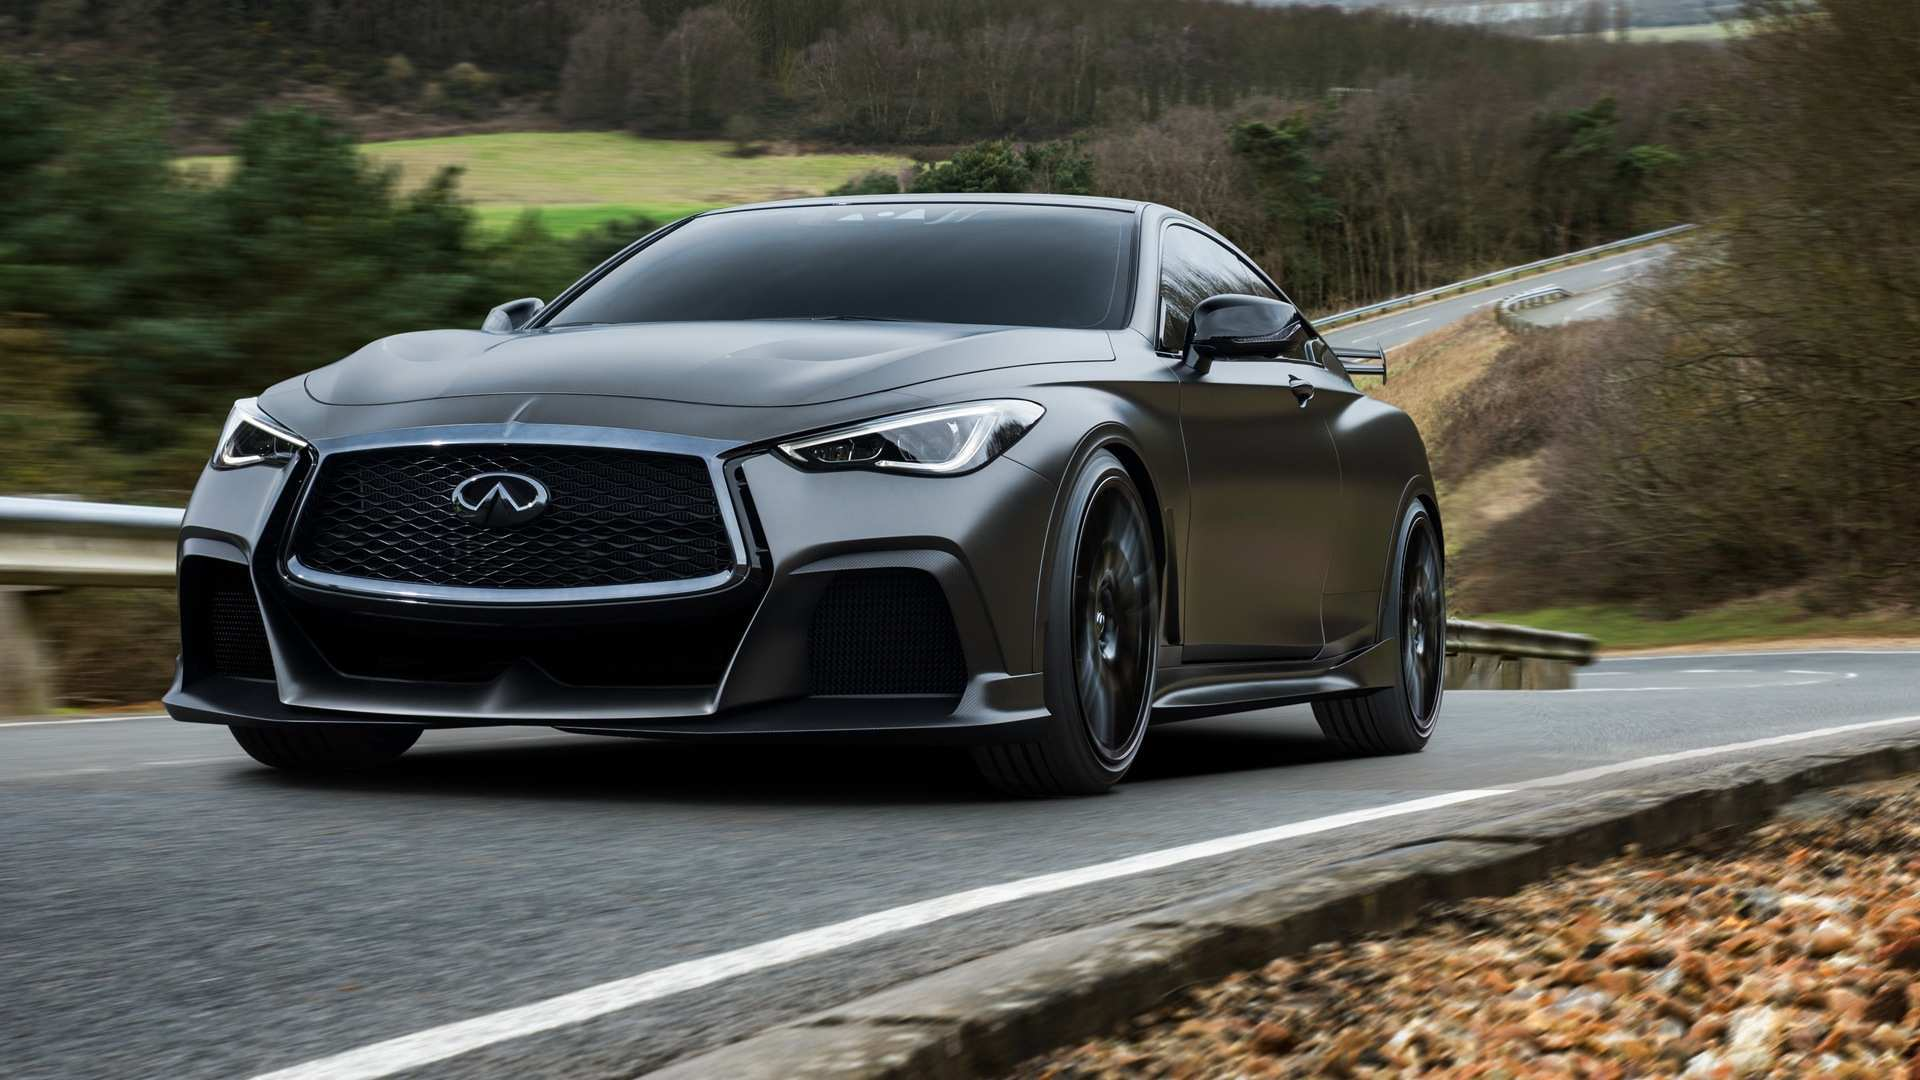 39 New Infiniti Auto 2020 Redesign And Review